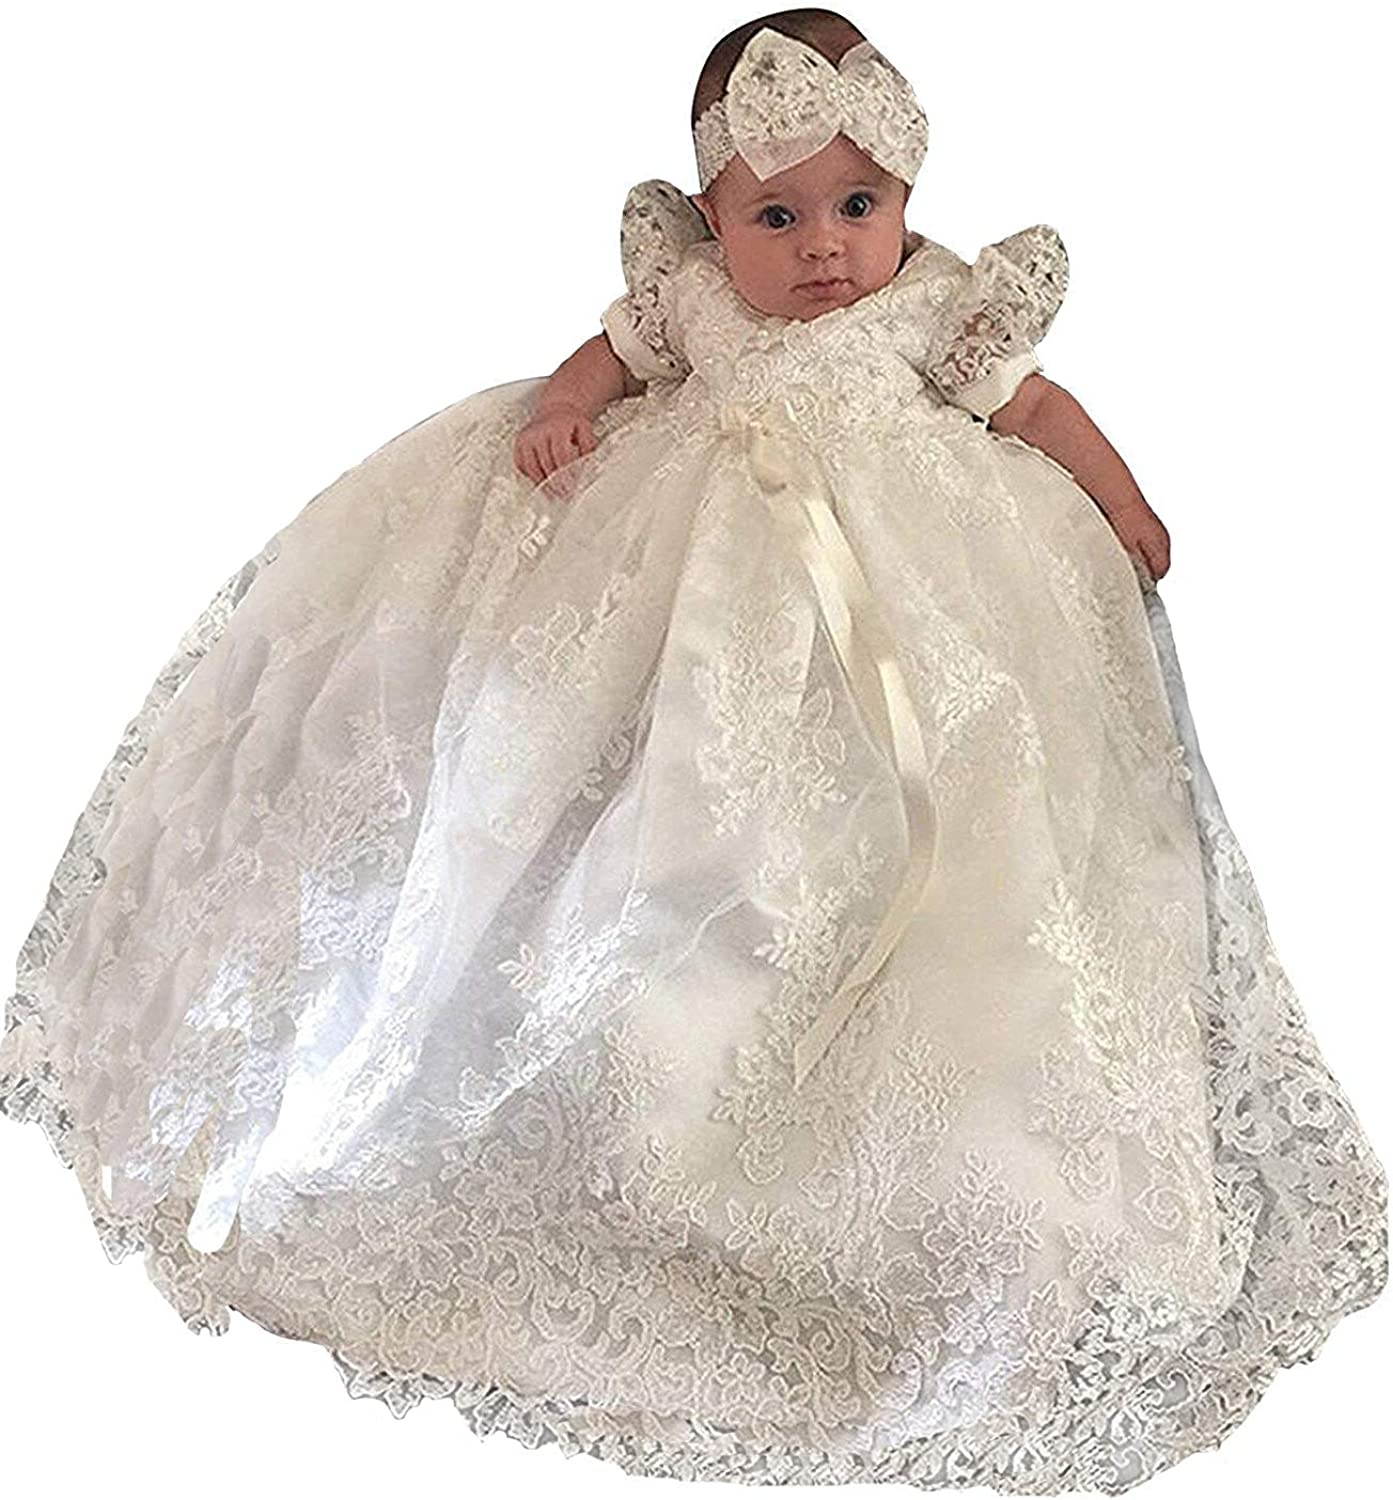 Christening Gown Baby Girl OFFicial Lace Toddler 3-24 Month Age outlet for Dress